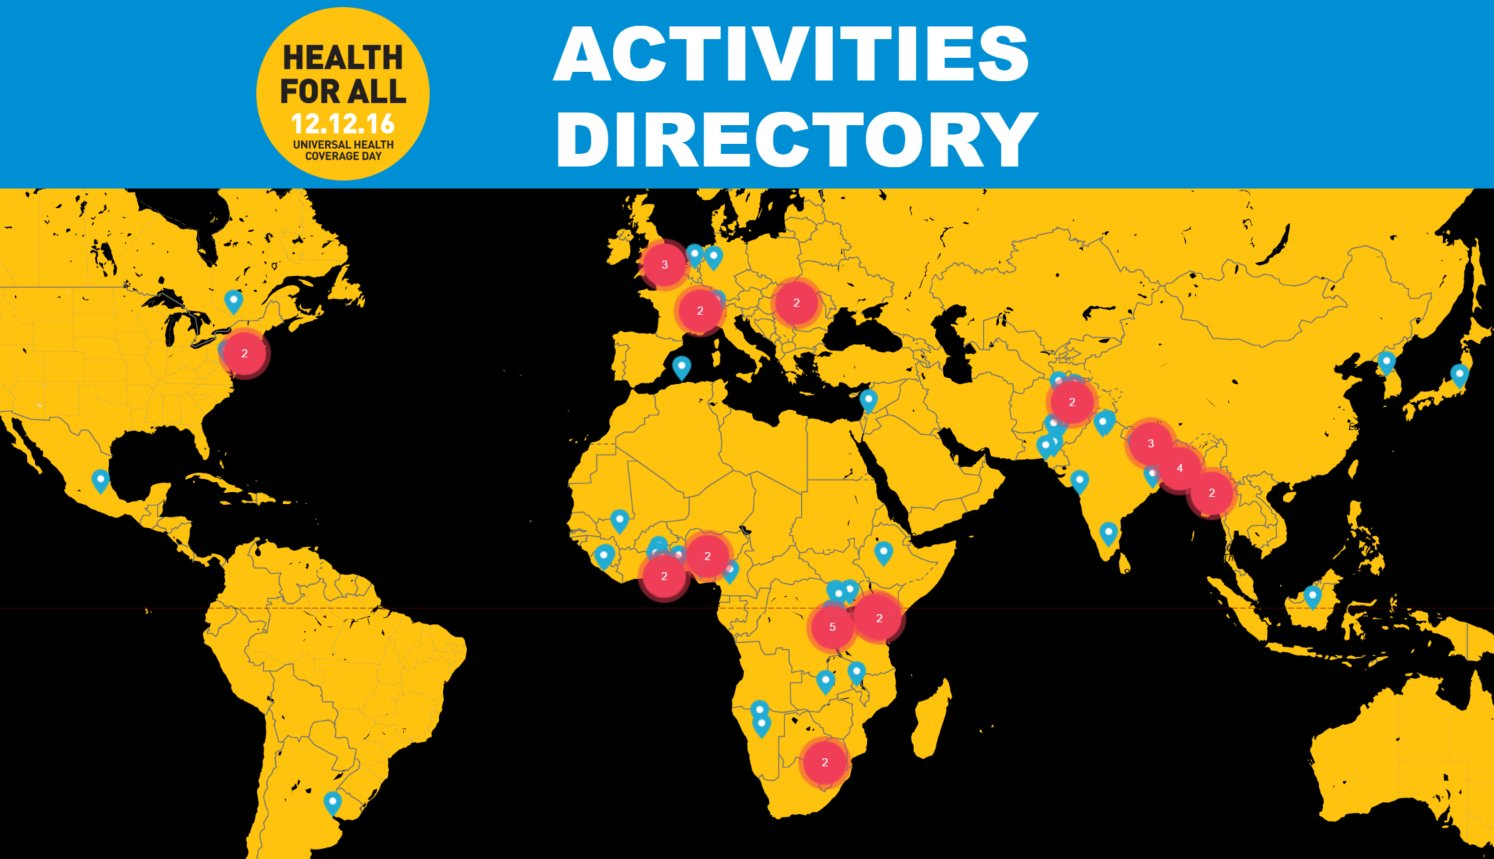 At the end of a big week for the #HealthForAll movement, we're so inspired by the #UHC Coalition's 90+ activities in 35 countries! 🏆 https://t.co/XEDTeRVHB9